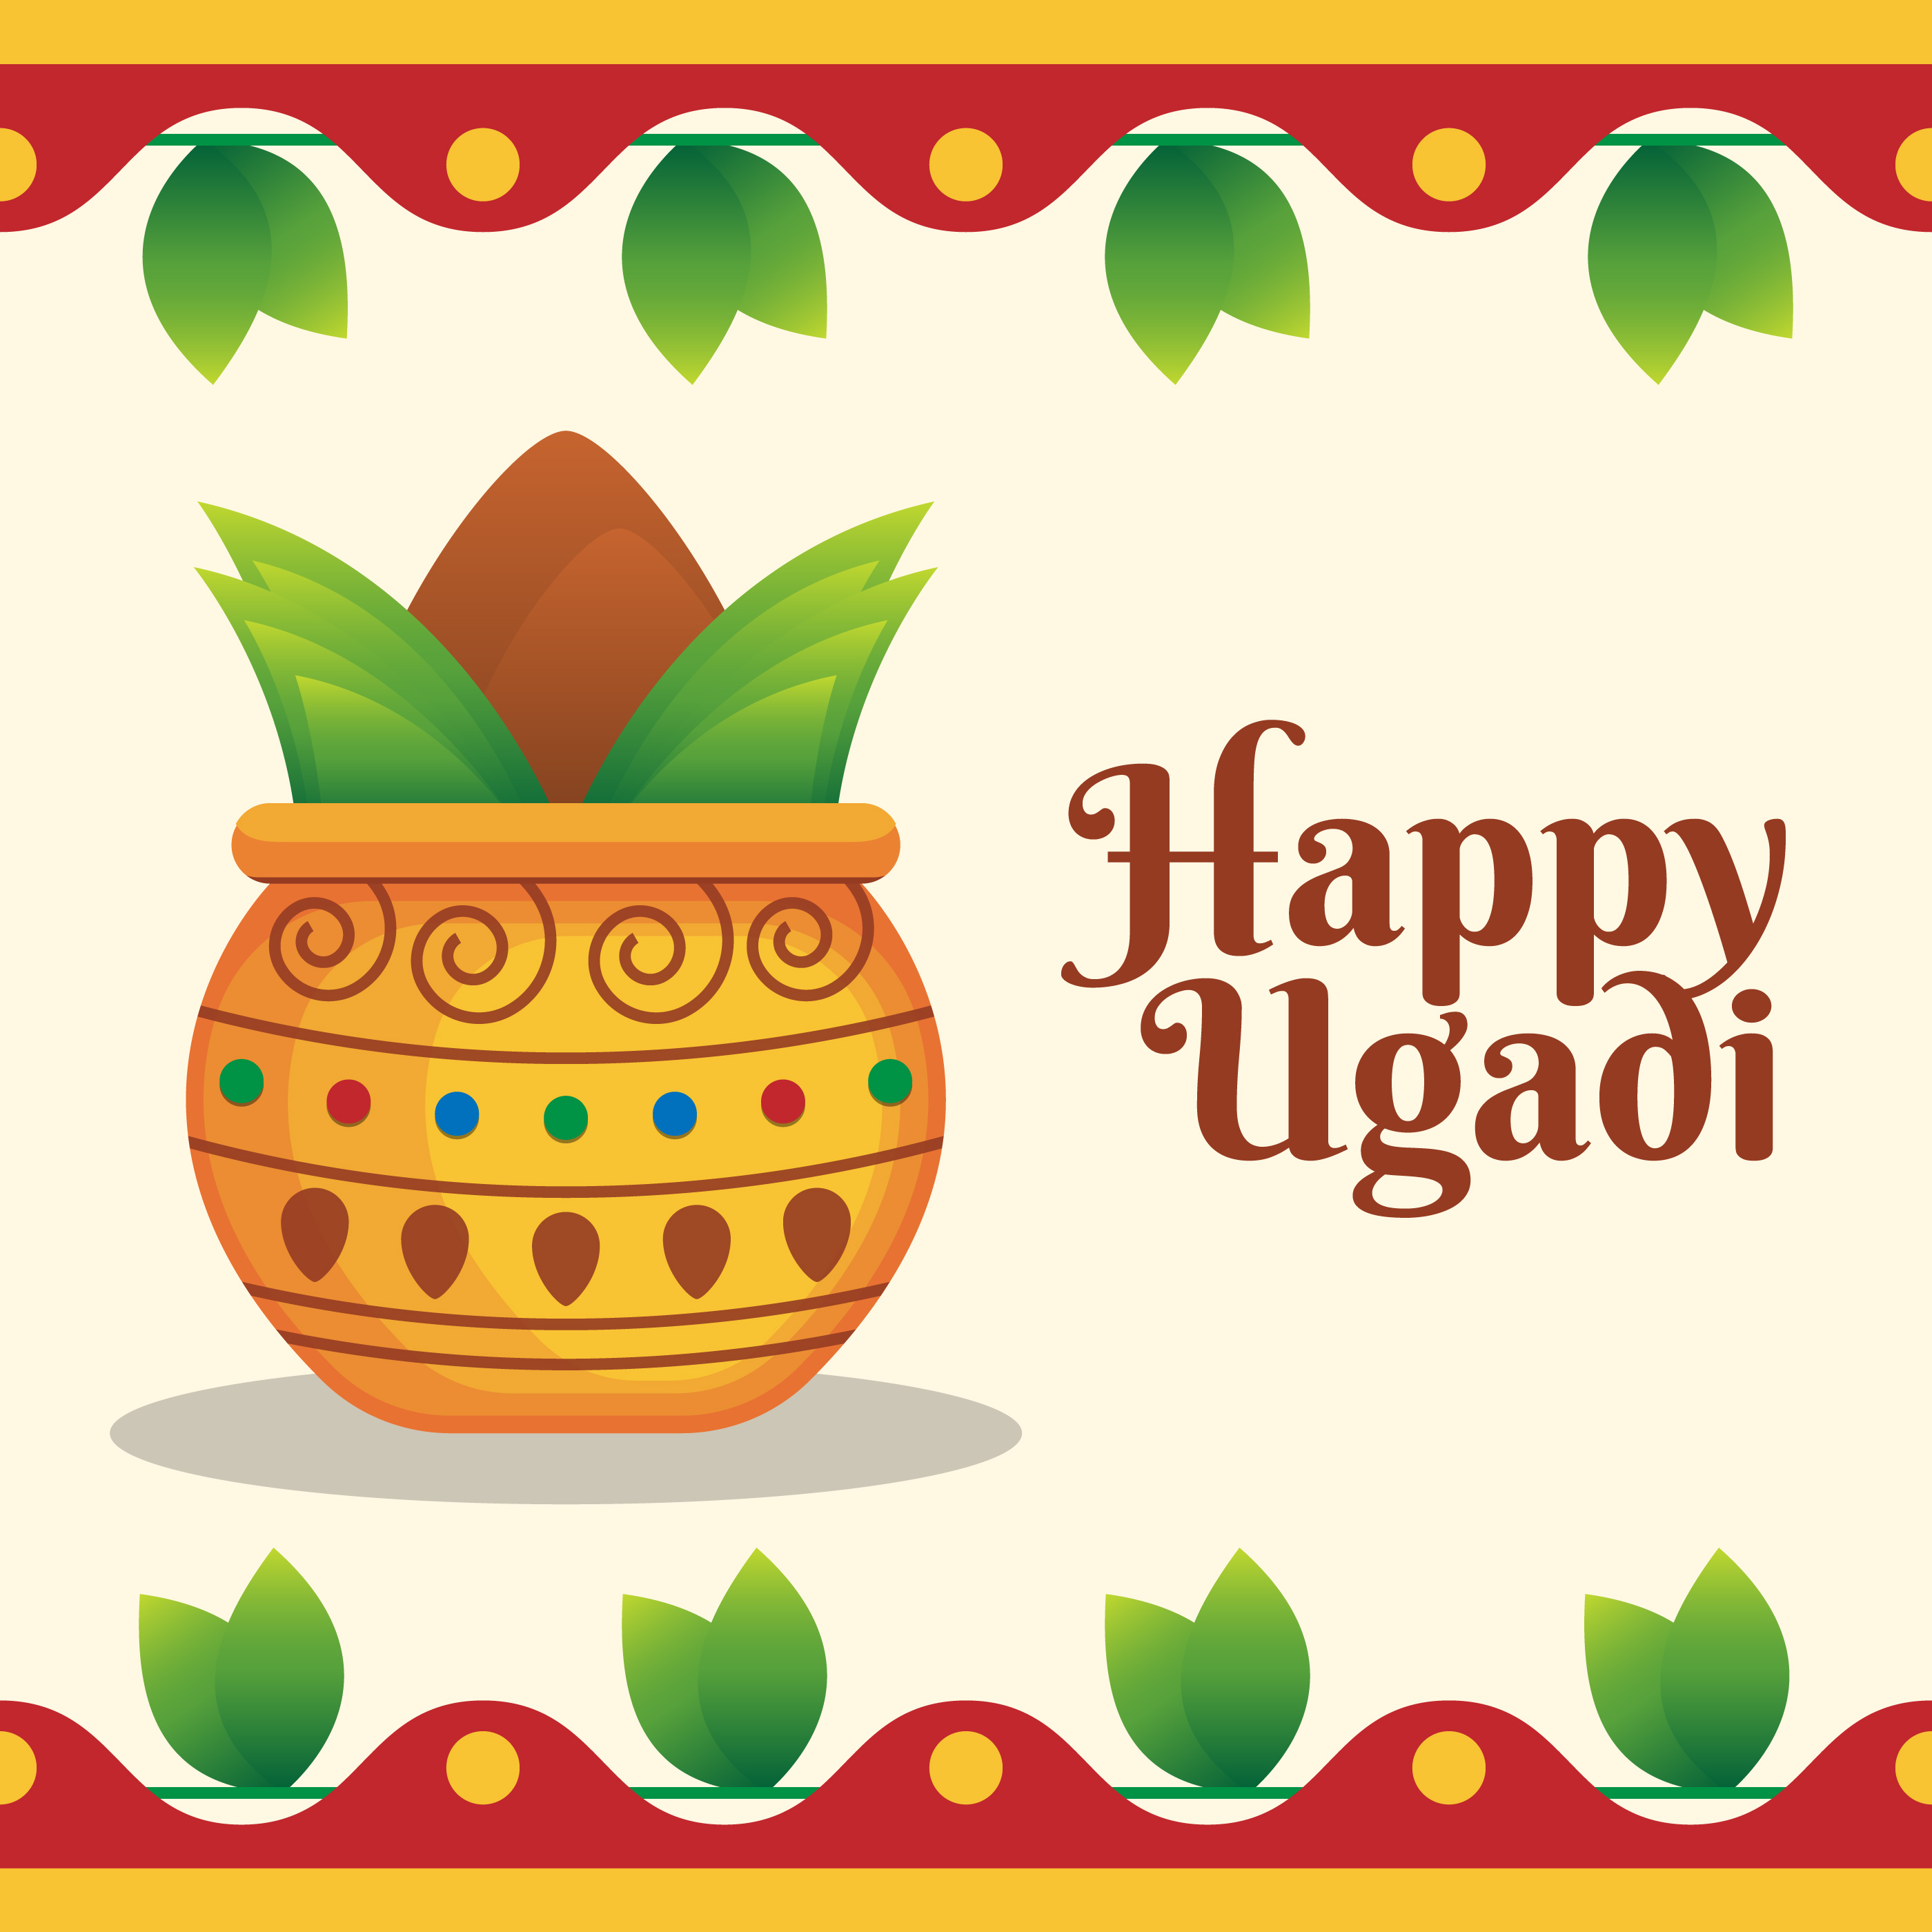 Happy Ugadi Greeting Card For Holiday Templates Download Free